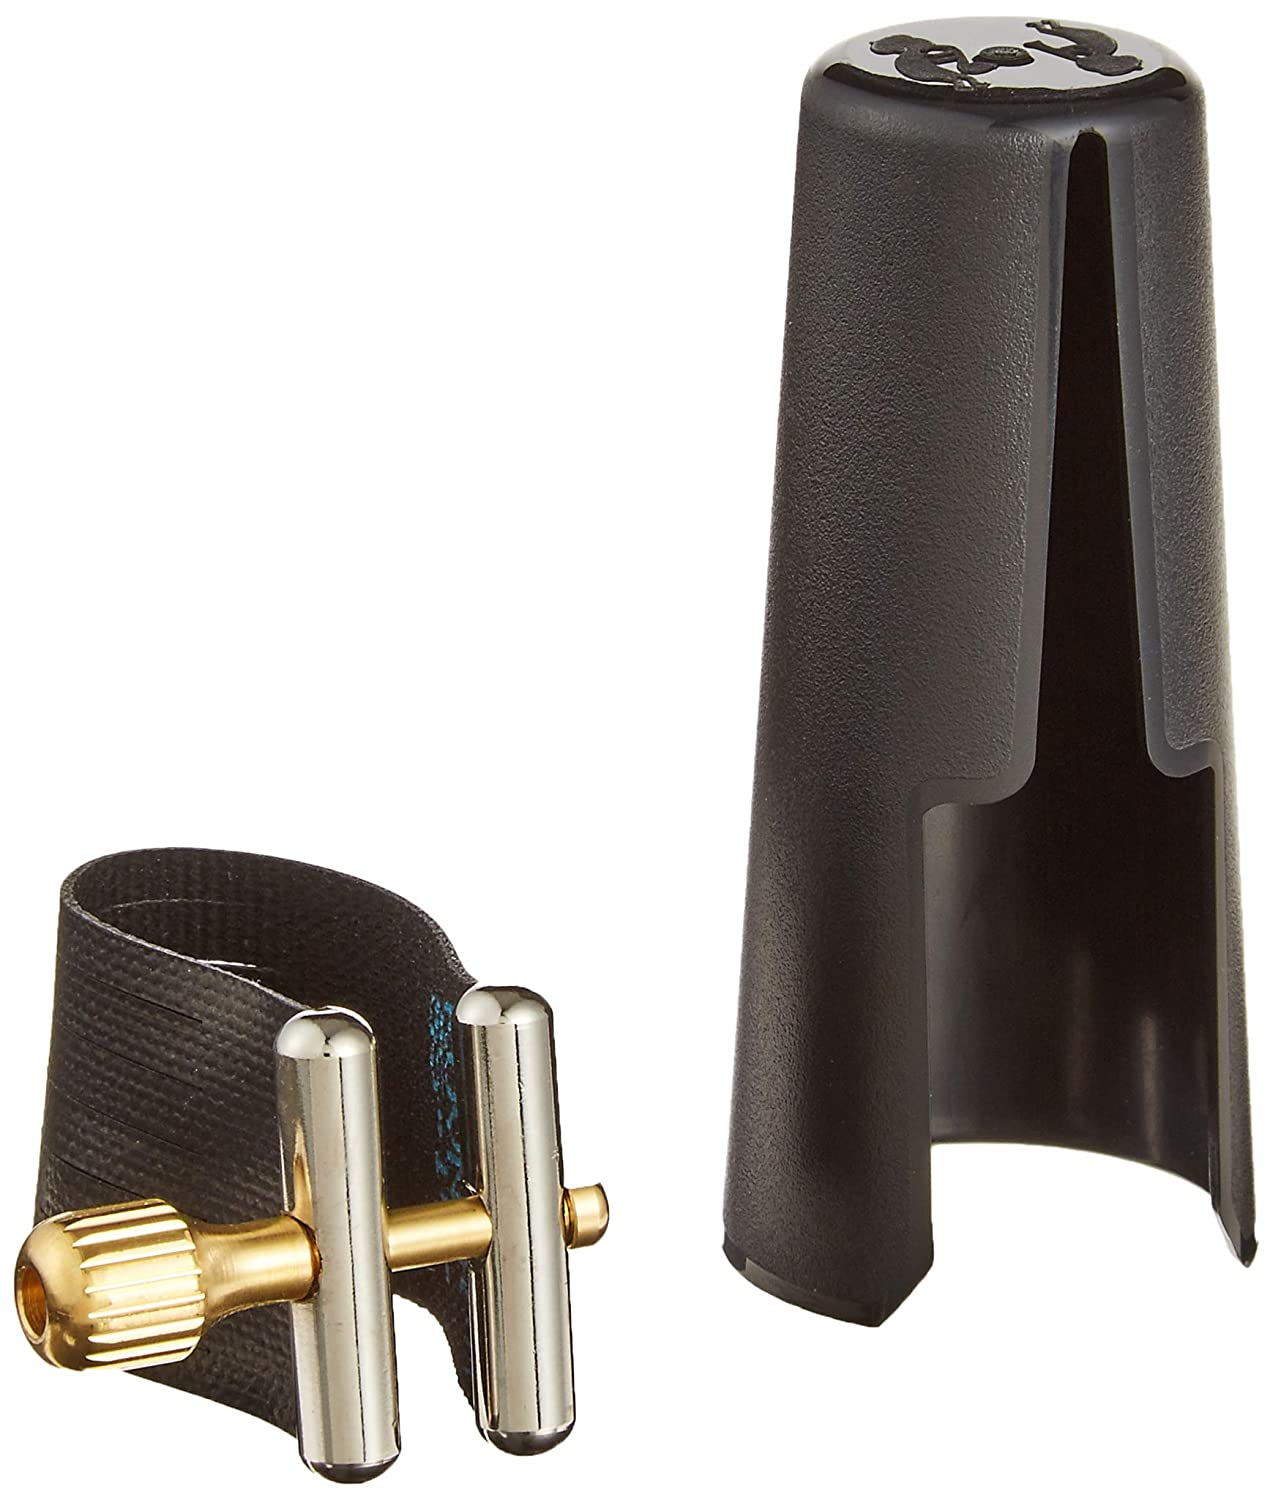 Rovner SS3R Star Series Ligature for Hard Rubber Baritone Sax, Gold Fittings